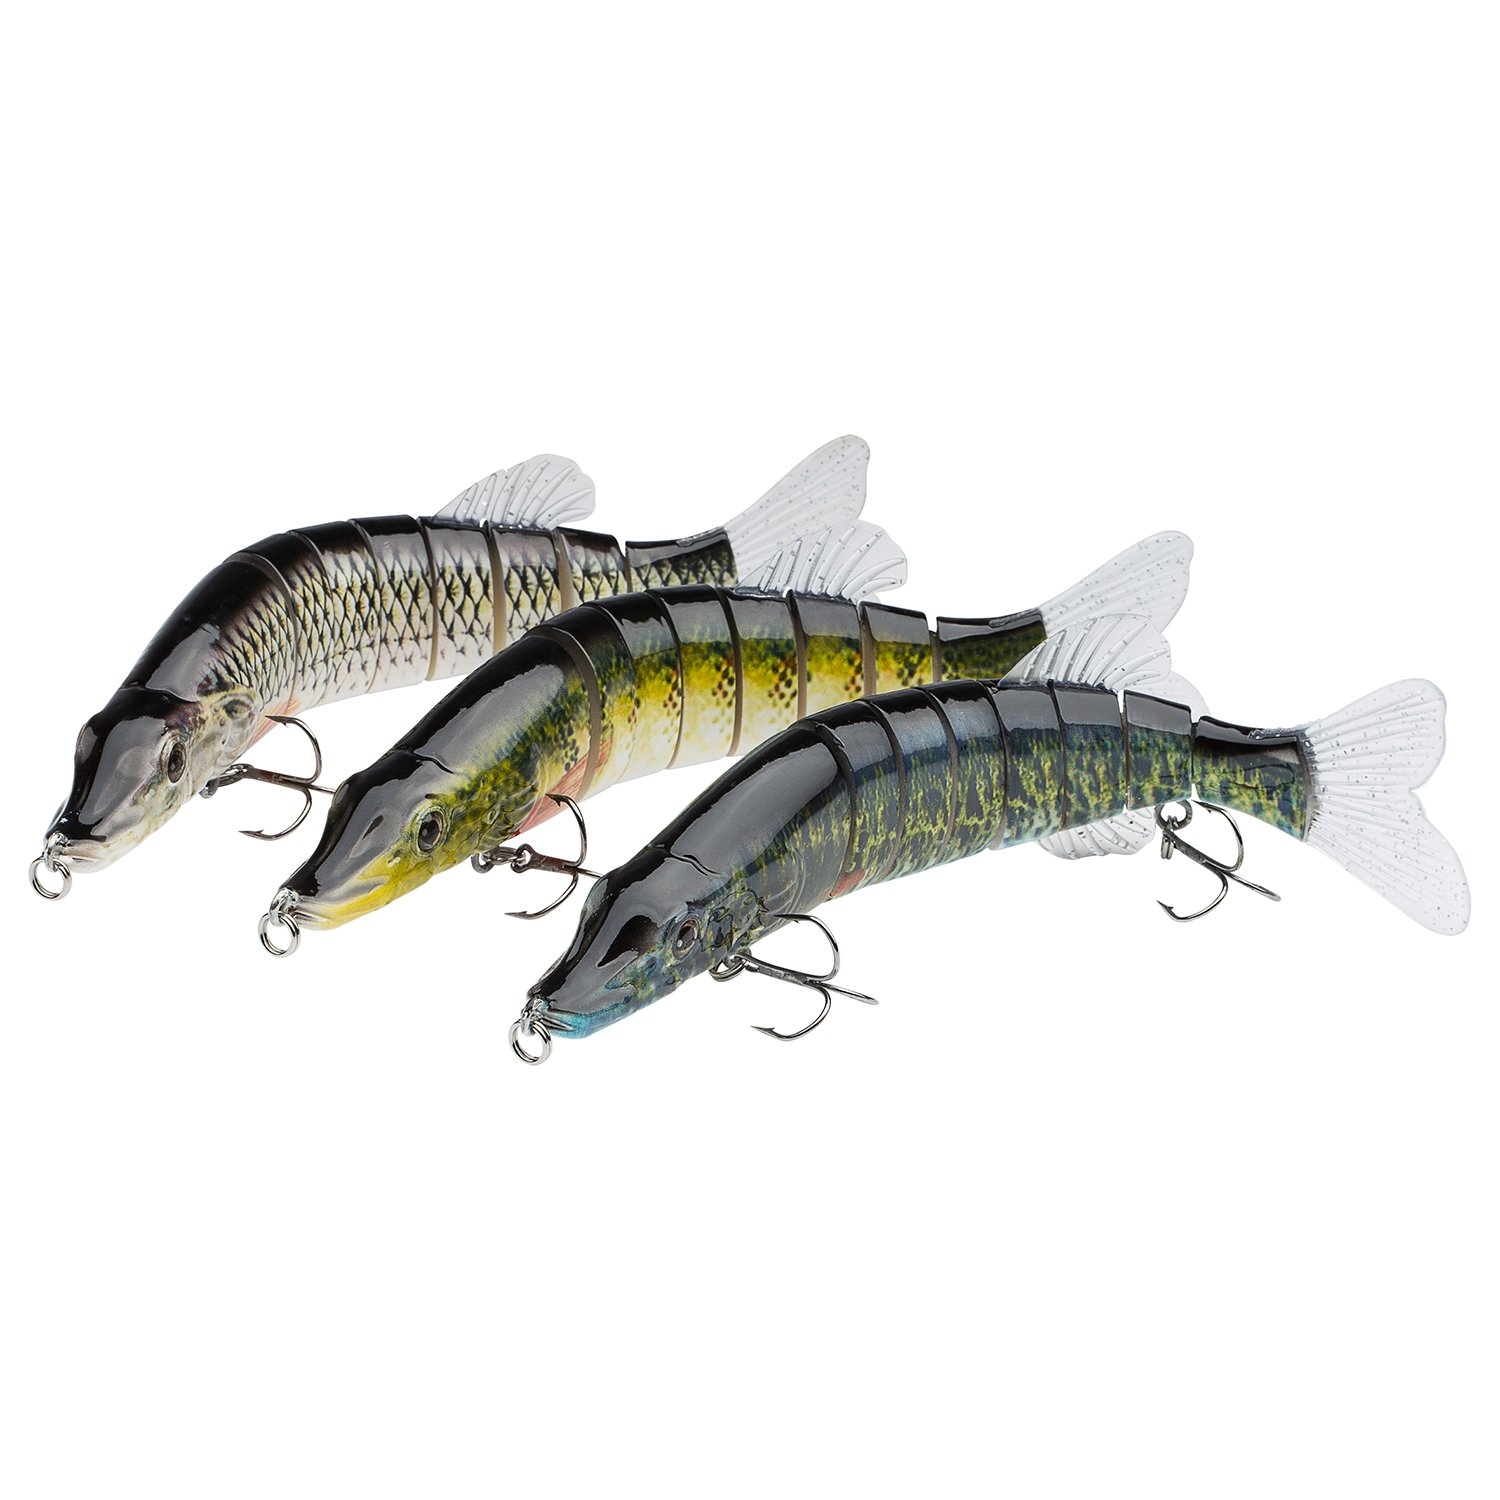 Bassdash Swimpike Multi Jointed Swimbaits Bass Fishing Lure Hard Body Soft Fins 8'' 2-1/2oz, 4 Colors, Pack of 3 Colors (SBS)